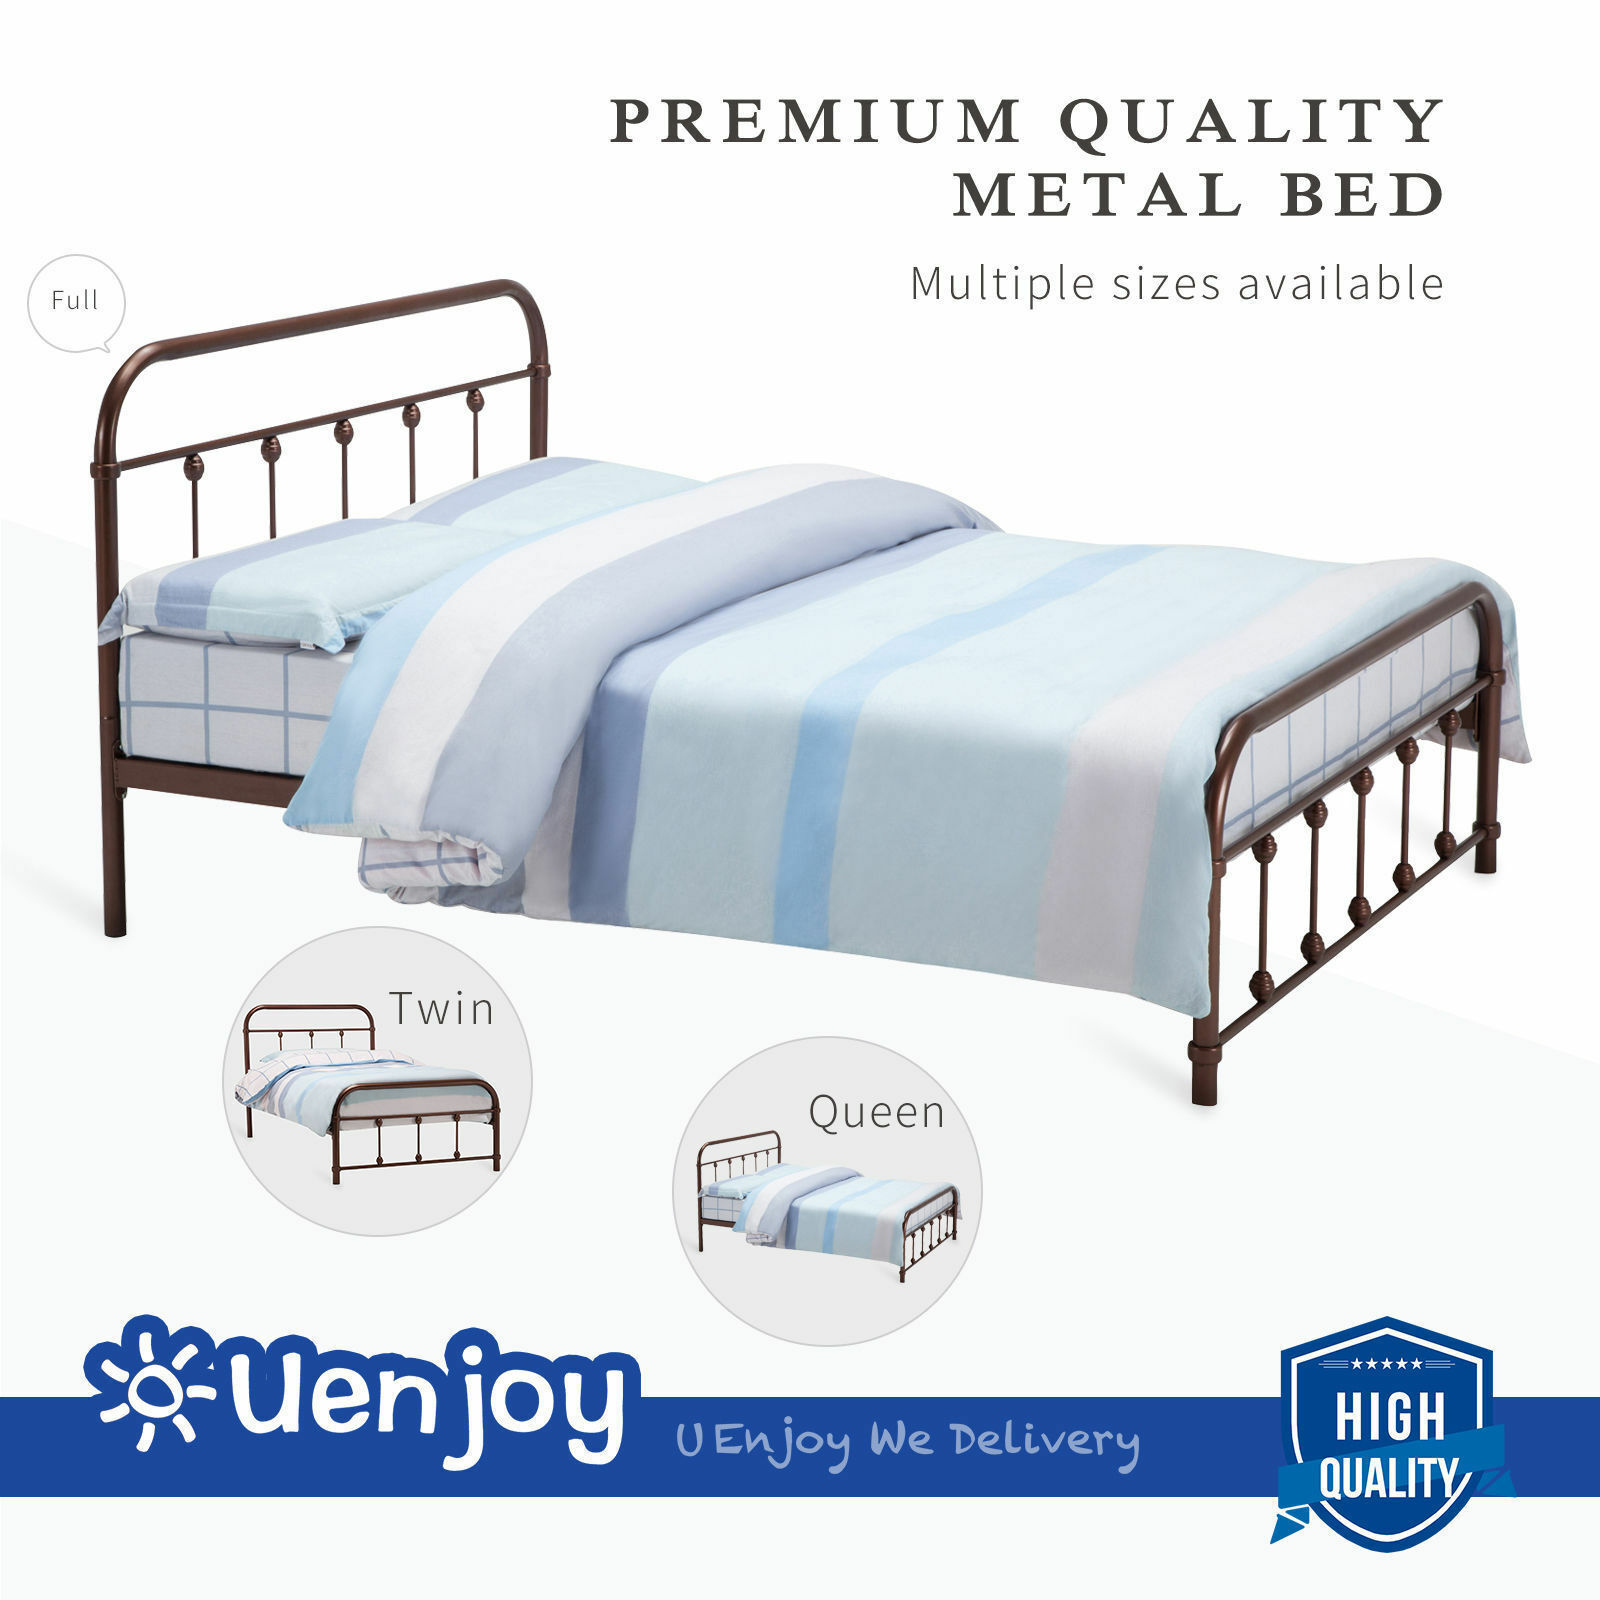 Full Bed And Queen Bed: Metal Bed Frame Platform Twin Full Queen Size With